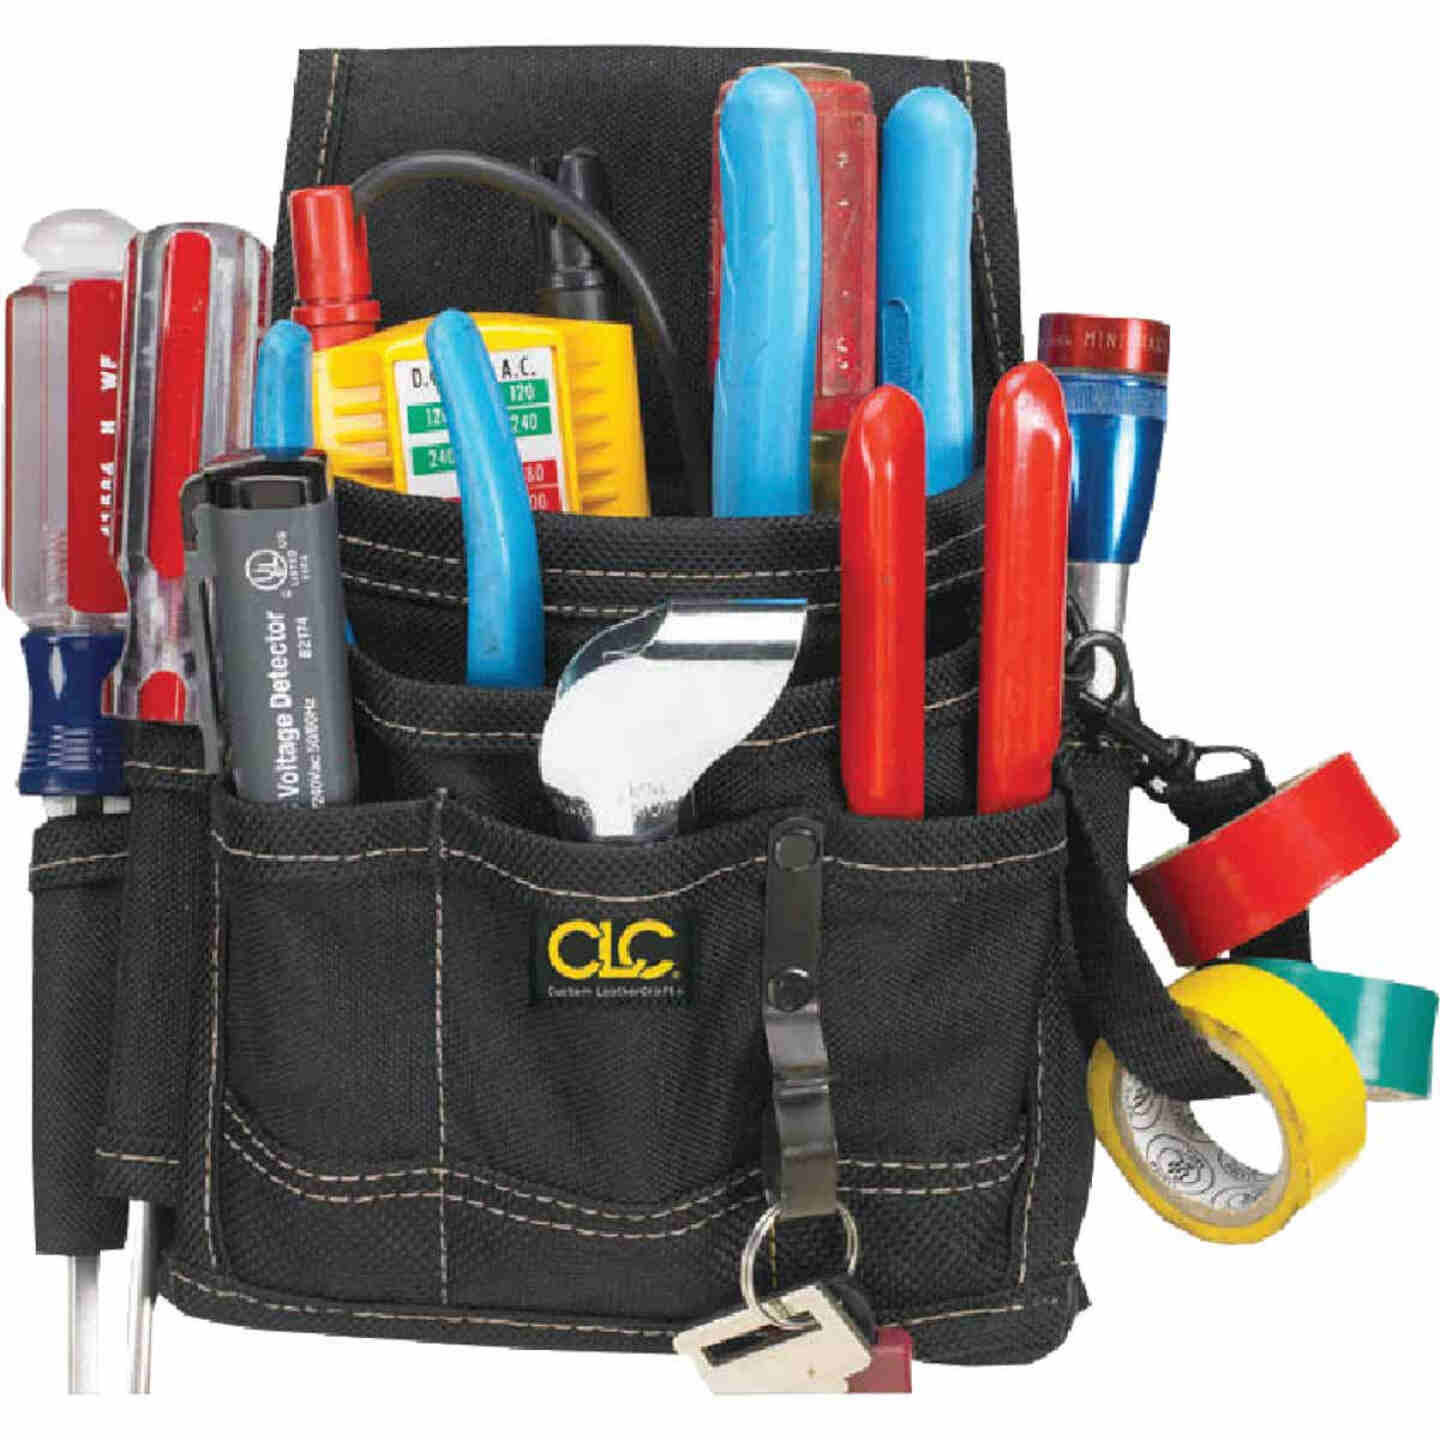 CLC 9-Pocket Electrical and Maintenance Tool Pouch Image 1